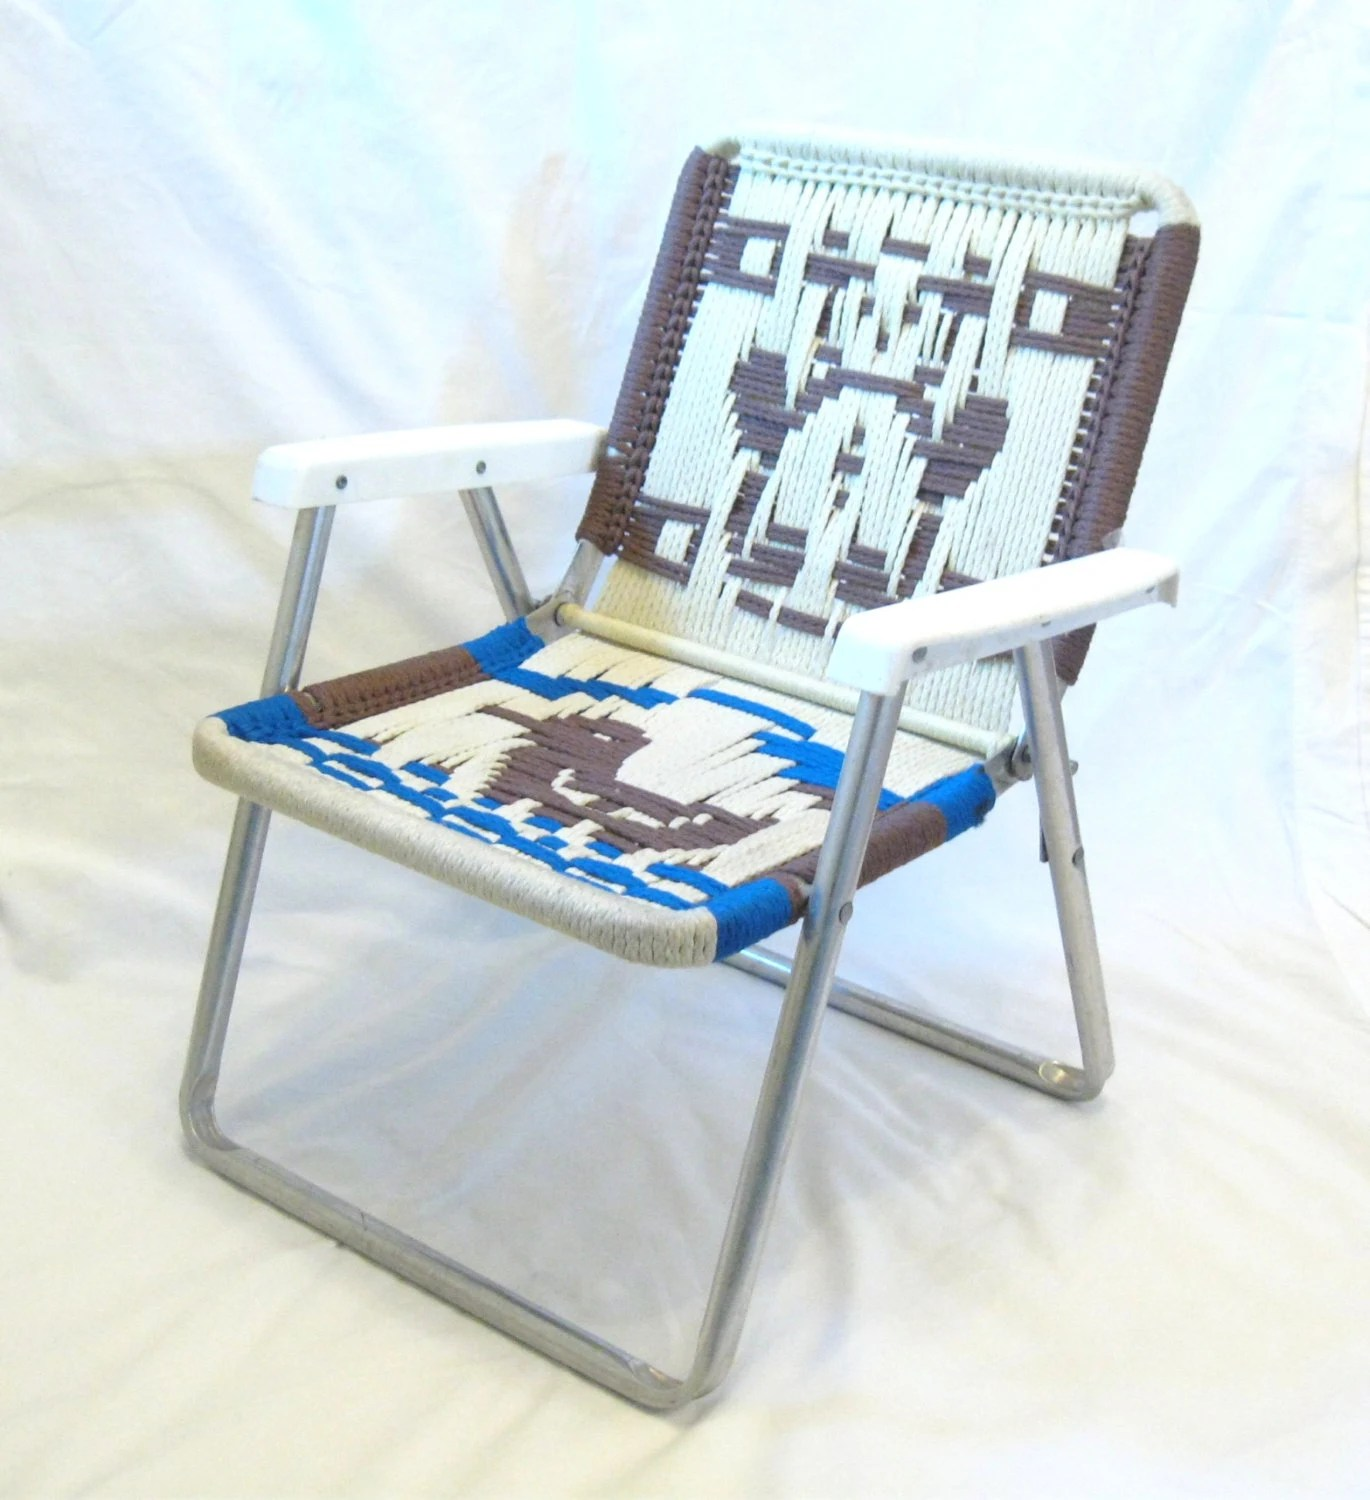 childs lawn chair ladder back restaurant chairs vintage macrame with bear and duck kid